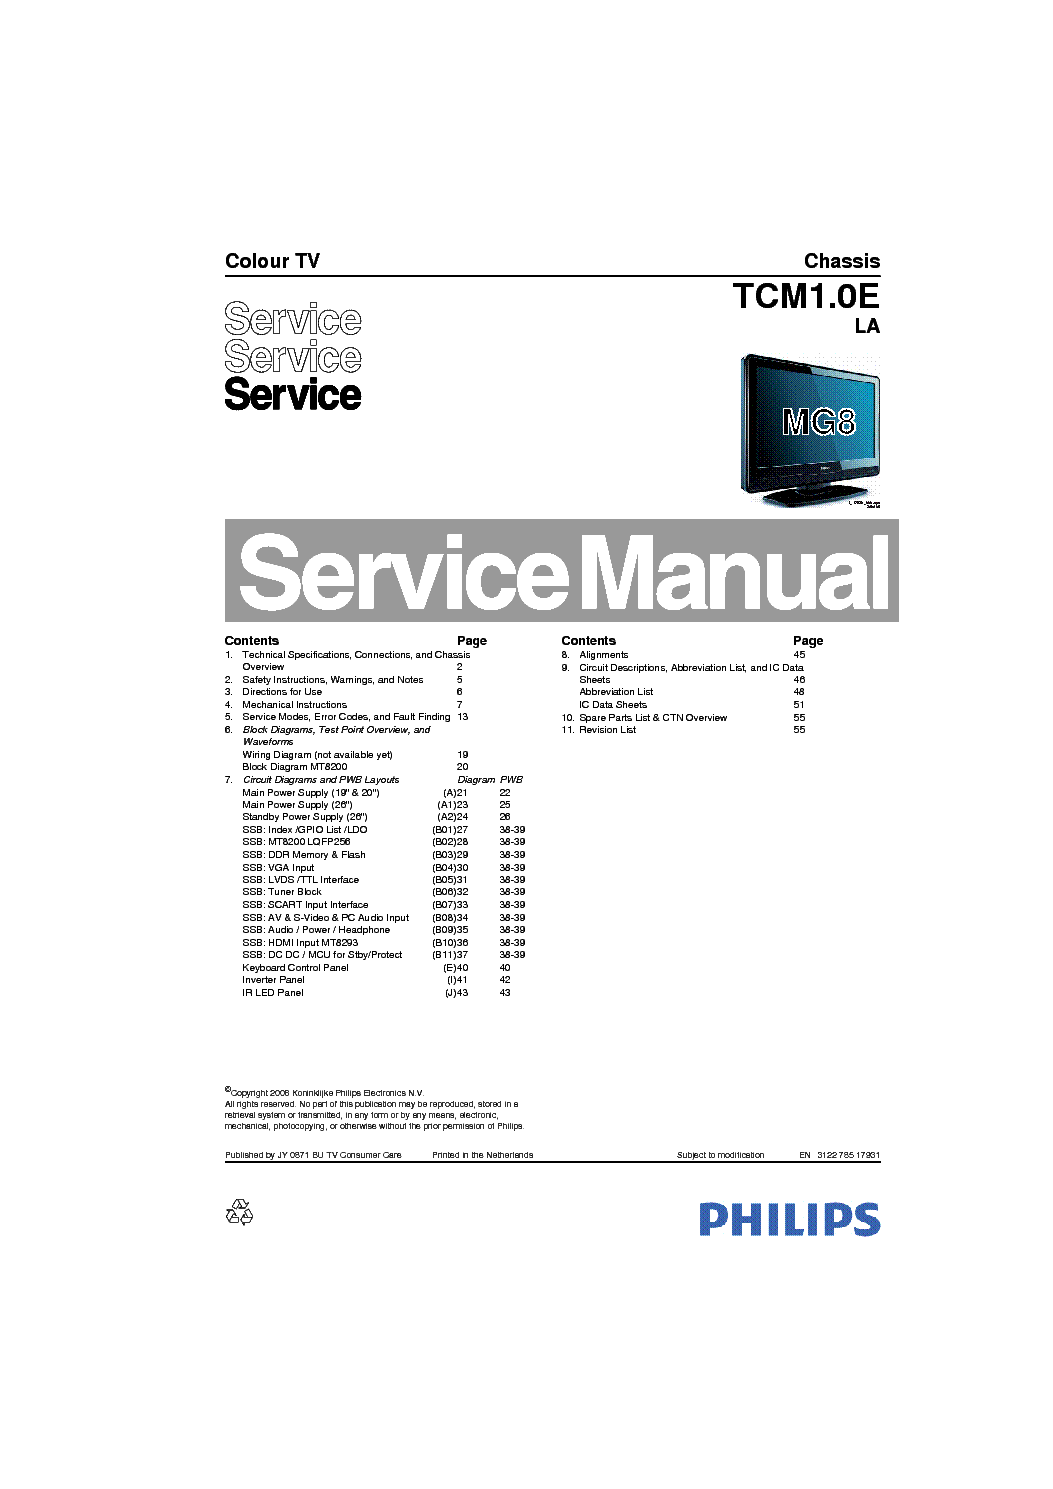 PHILIPS 22PFL3403-60 CHASSIS TCM1.0E-LA Service Manual